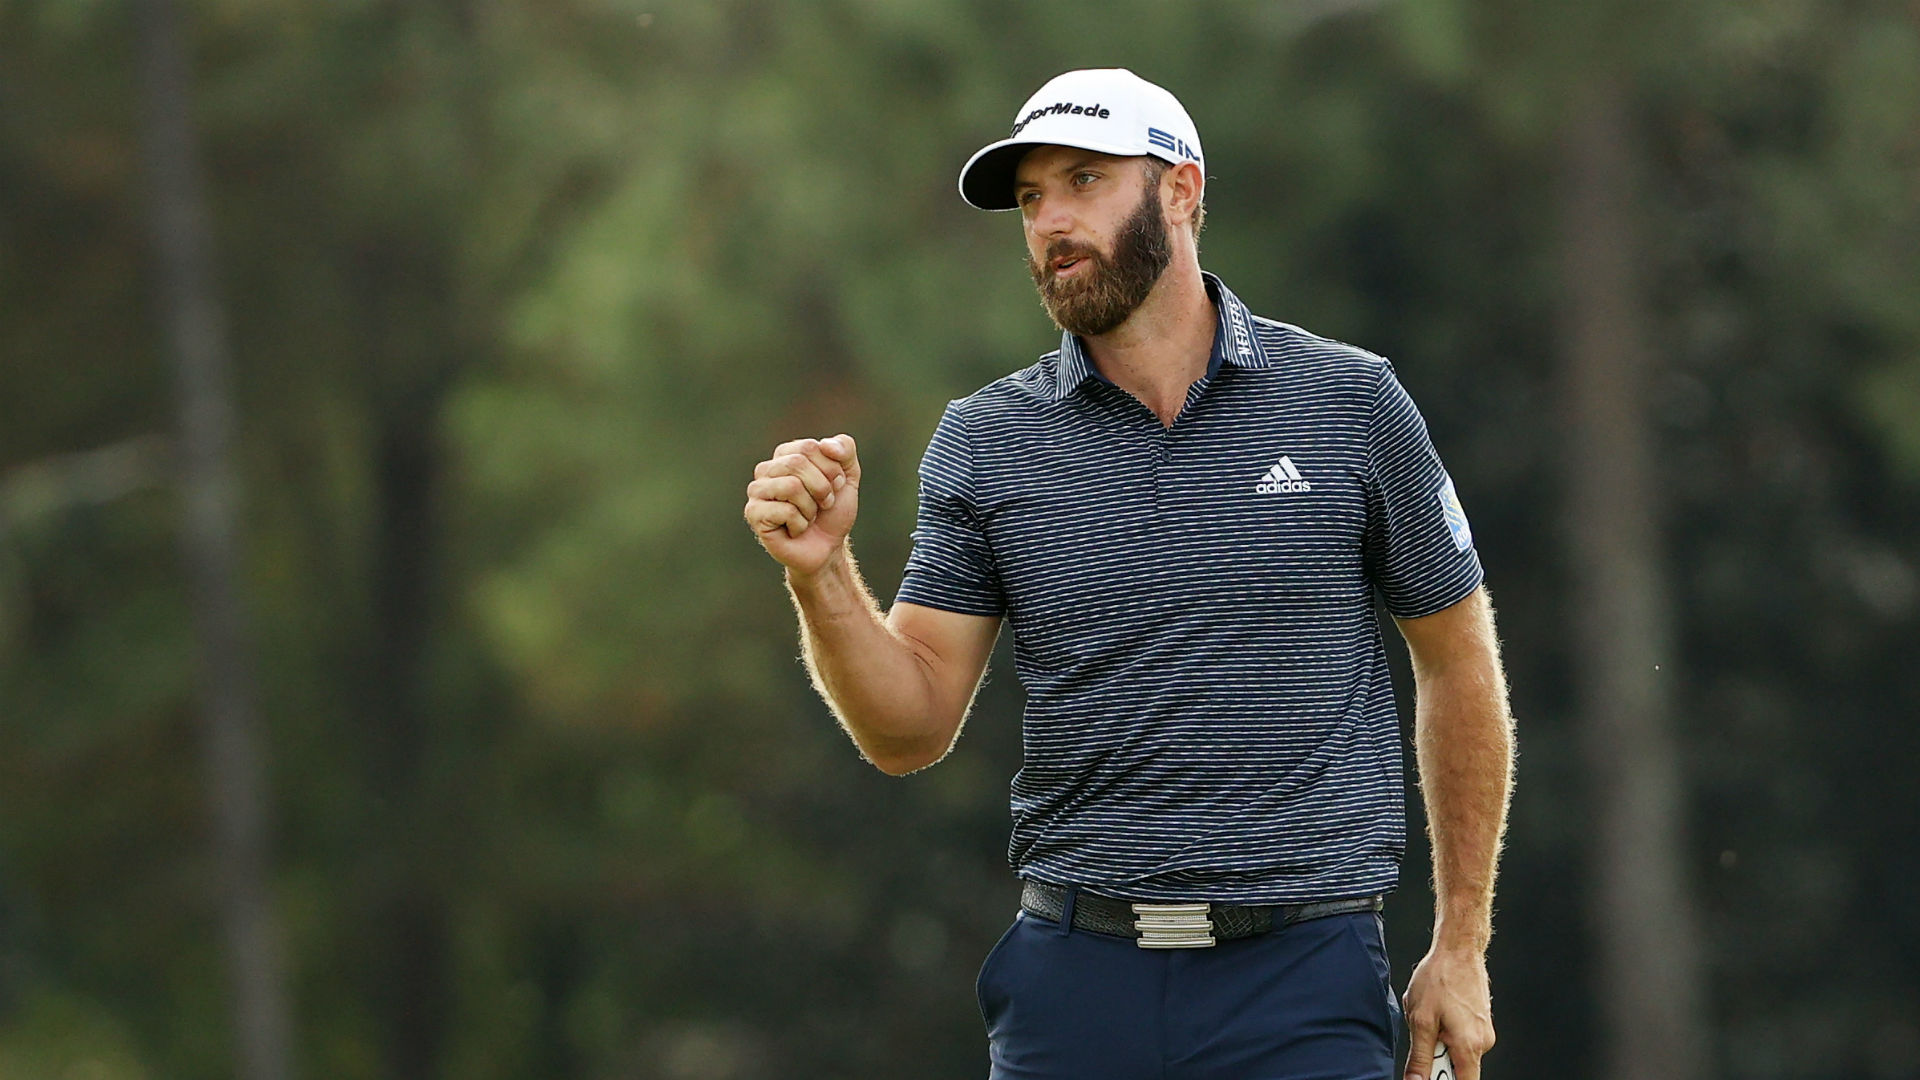 Free Masters Live Broadcast: How to Watch Morning Masters Coverage ESPN Before CBS Broadcasts